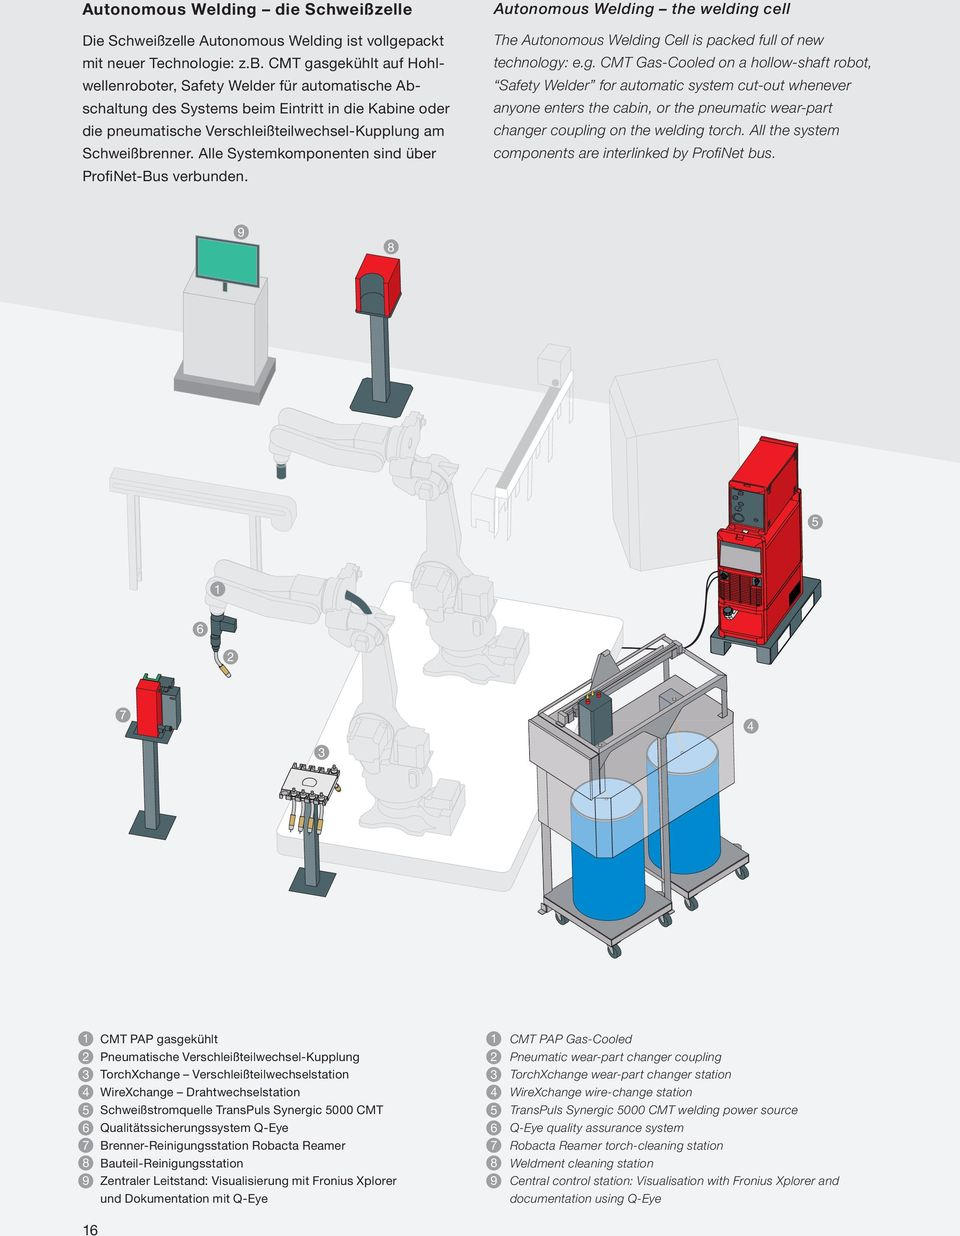 sgekühlt auf Hohl- technology: e.g. CMT Gas-Cooled on a hollow-shaft robot, wellenroboter, Safety Welder für automatische Ab- Safety Welder for automatic system cut-out whenever schaltung des Systems